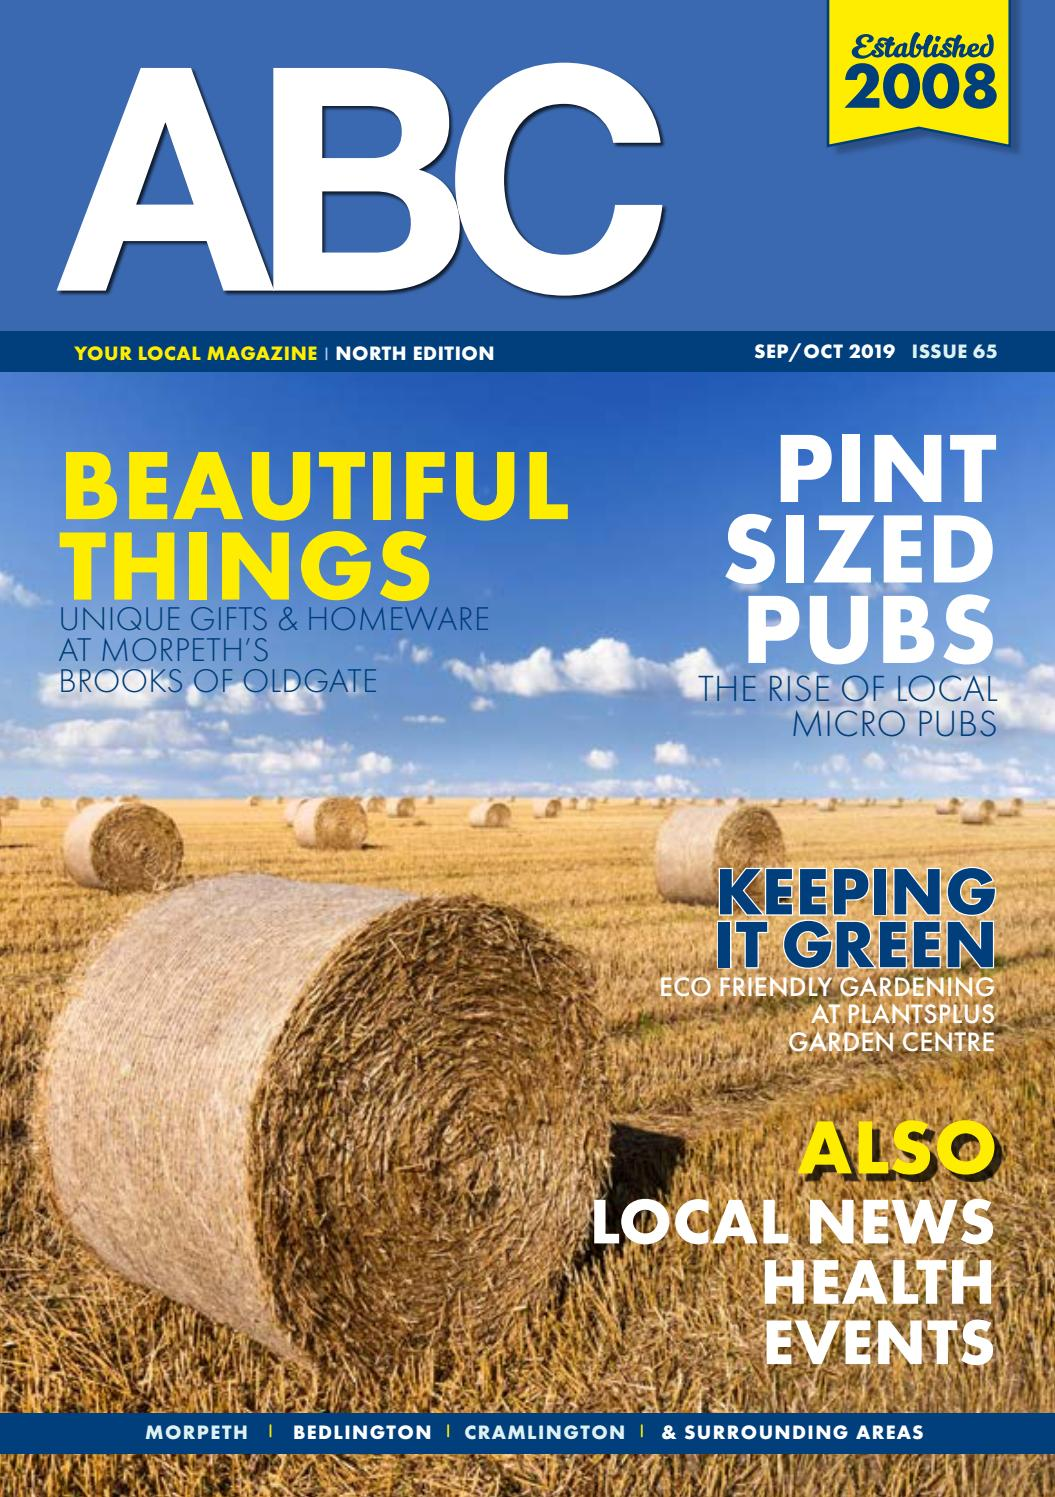 Abc Magazine North Edition Septoct 2019 By Abc